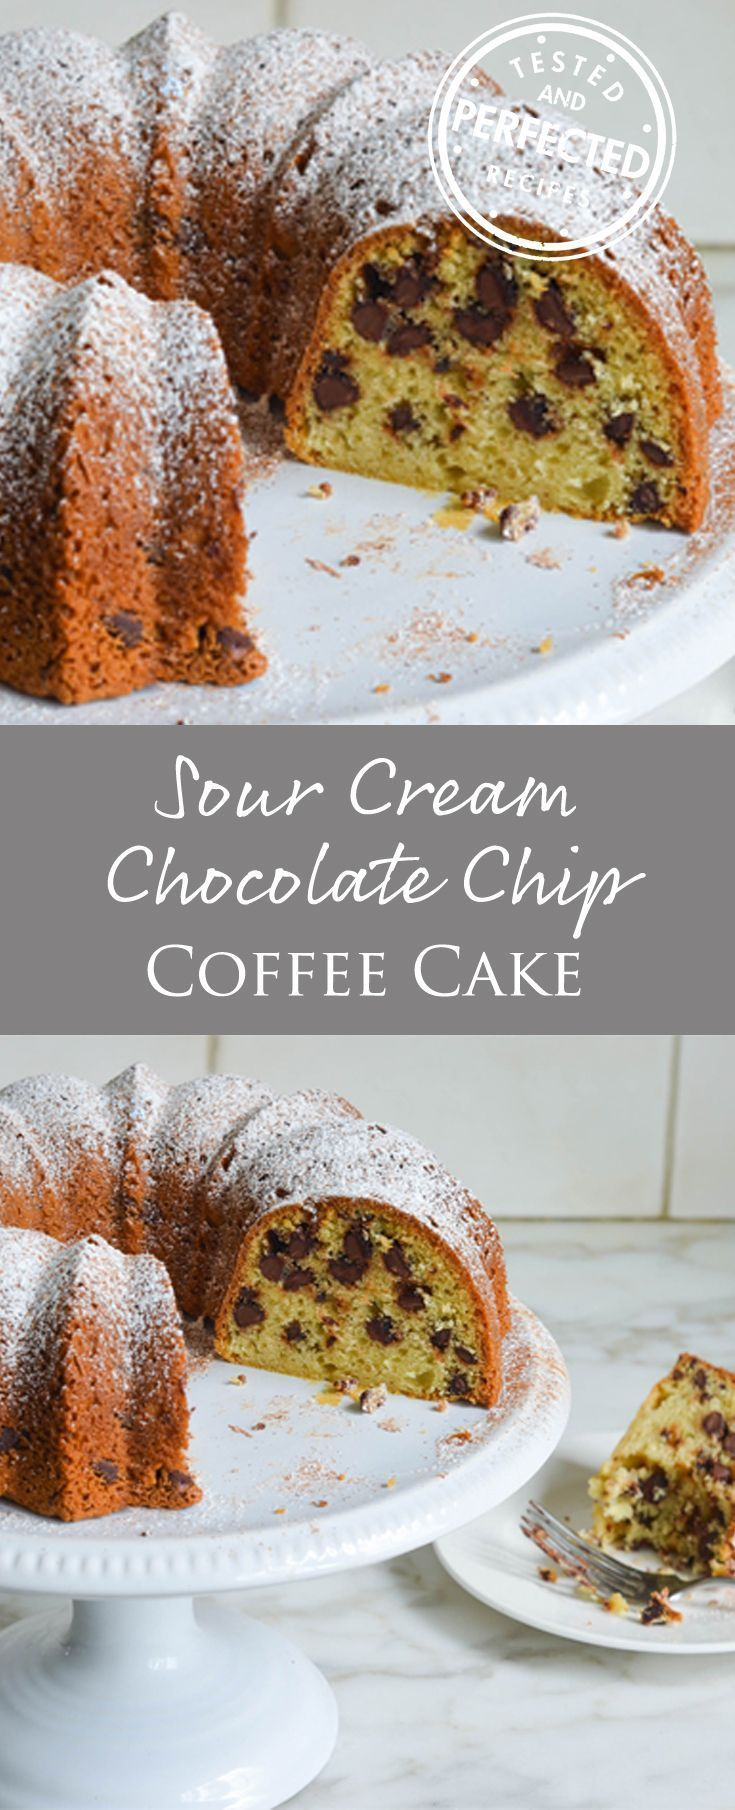 Sour cream coffee cake the frugal chef - Sour Cream Chocolate Chip Coffee Cake